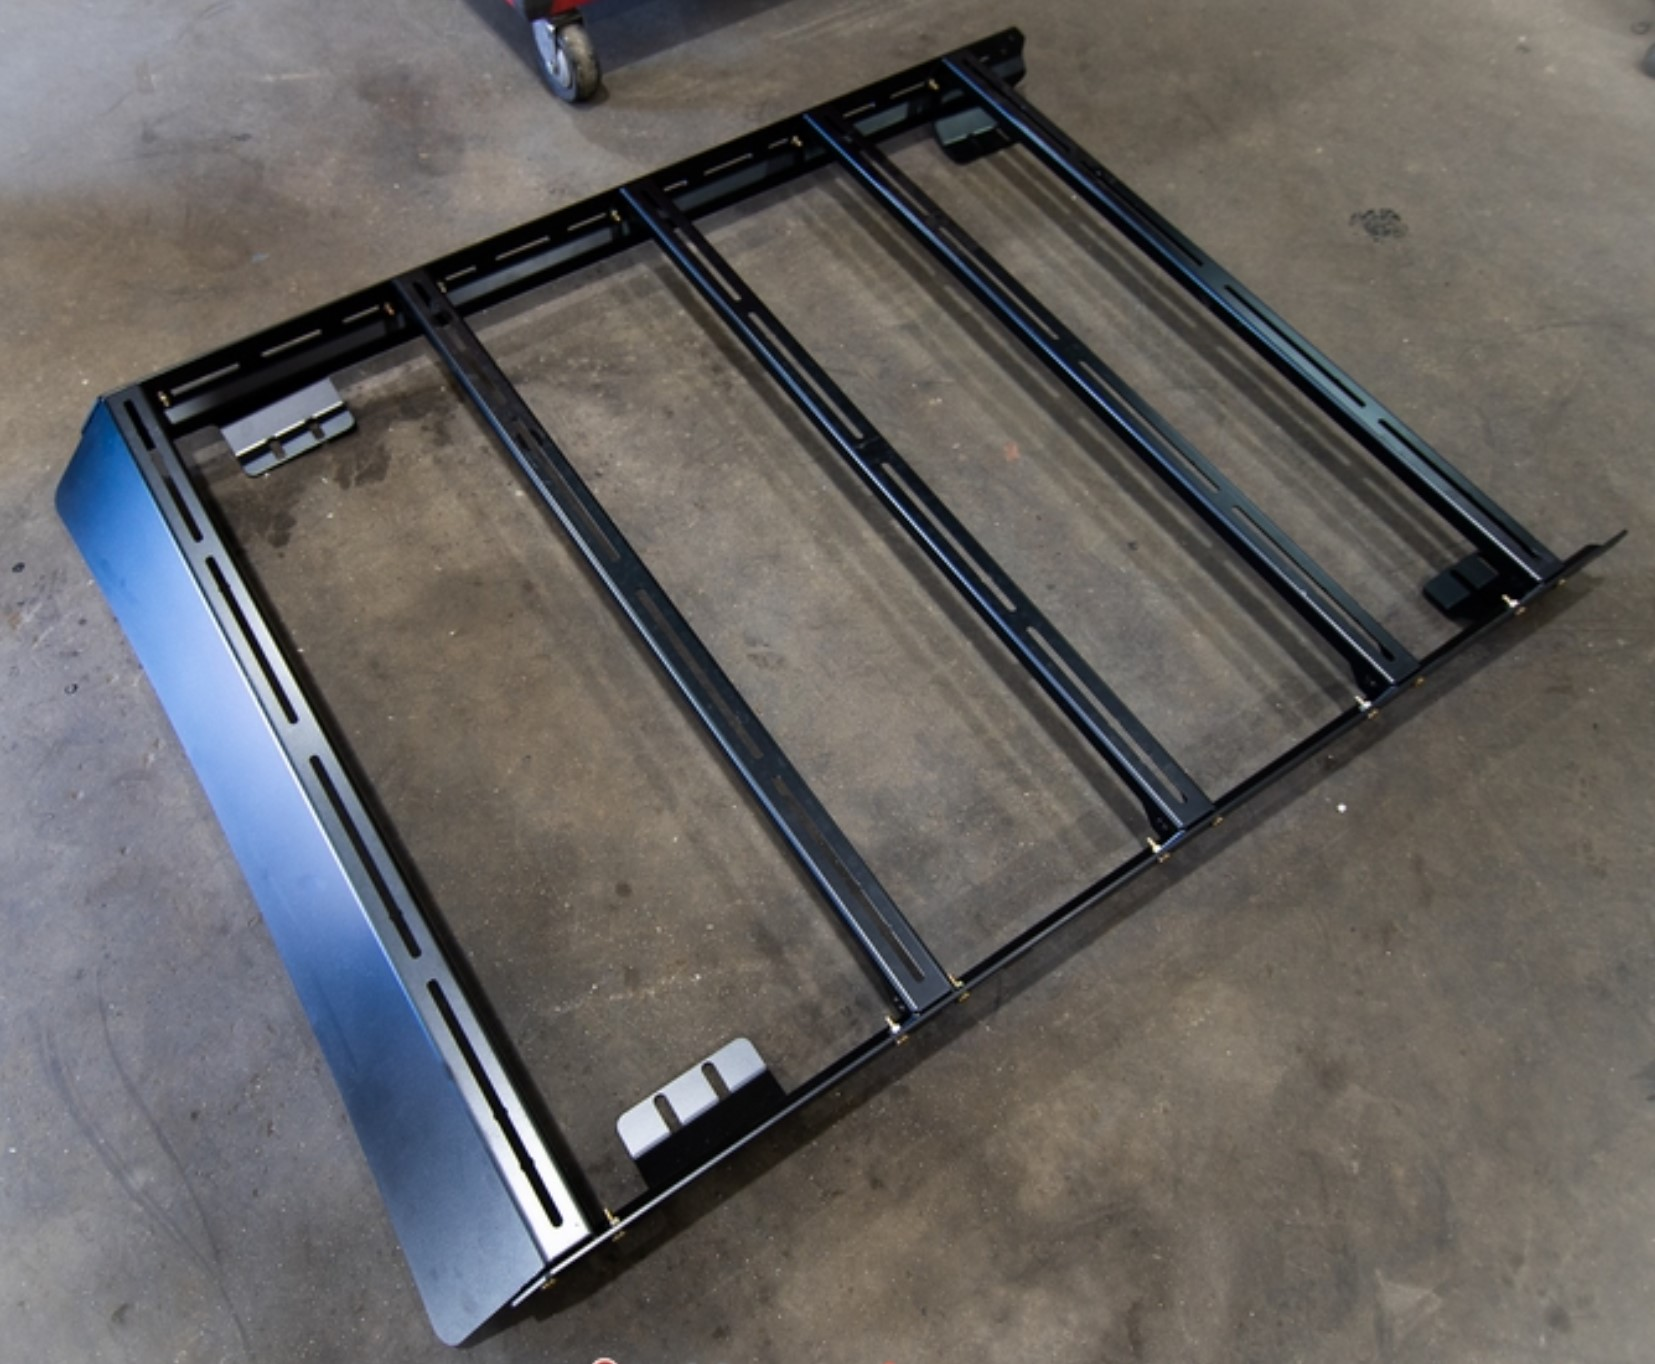 roof racks base kit comes with 2 roof rails, 6 cross bars and front fairing.